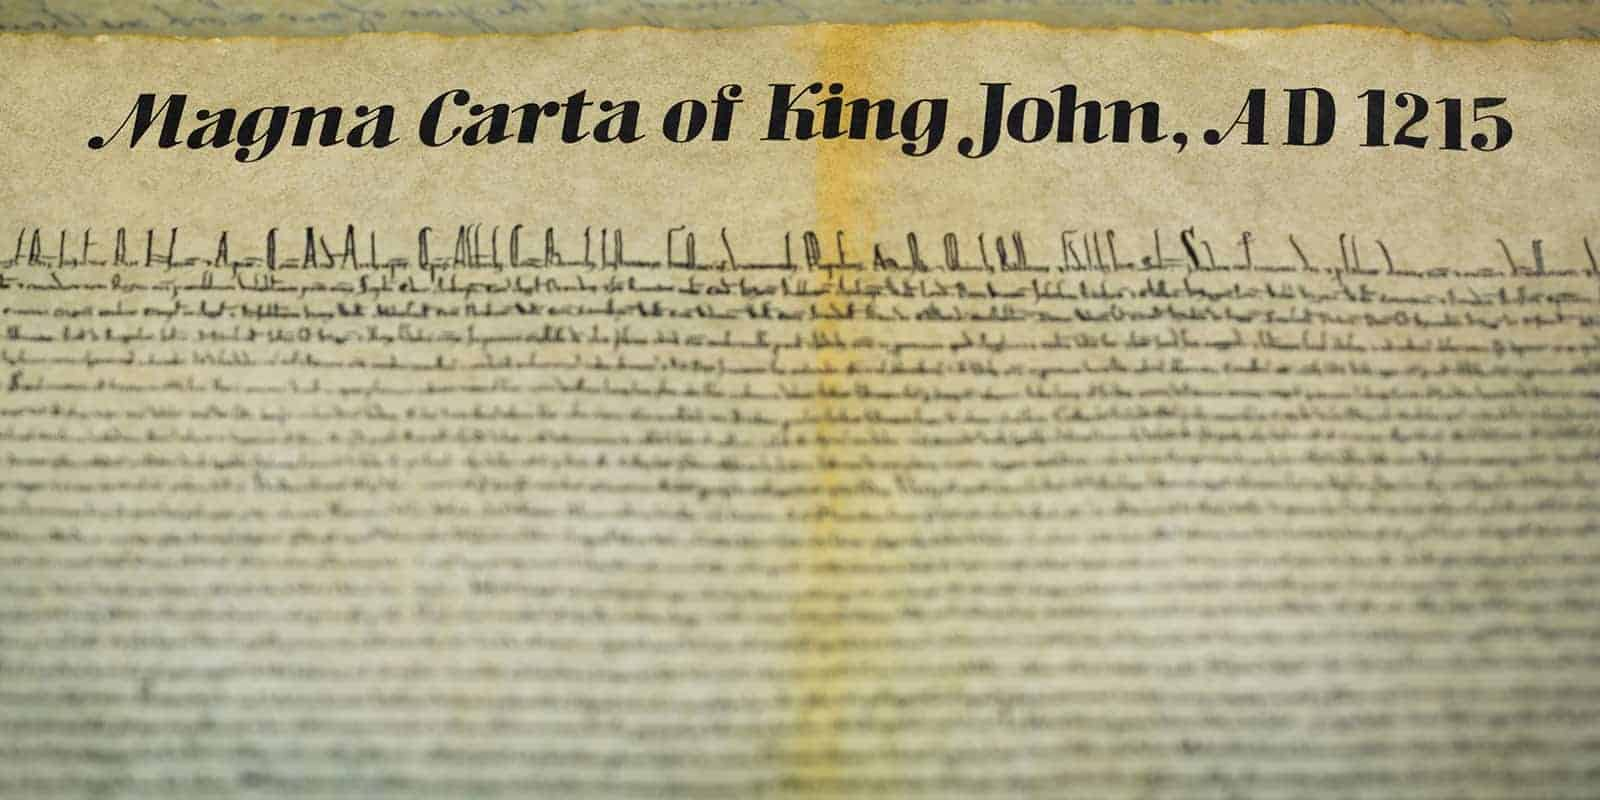 A close up of the Magna Carta of King John.